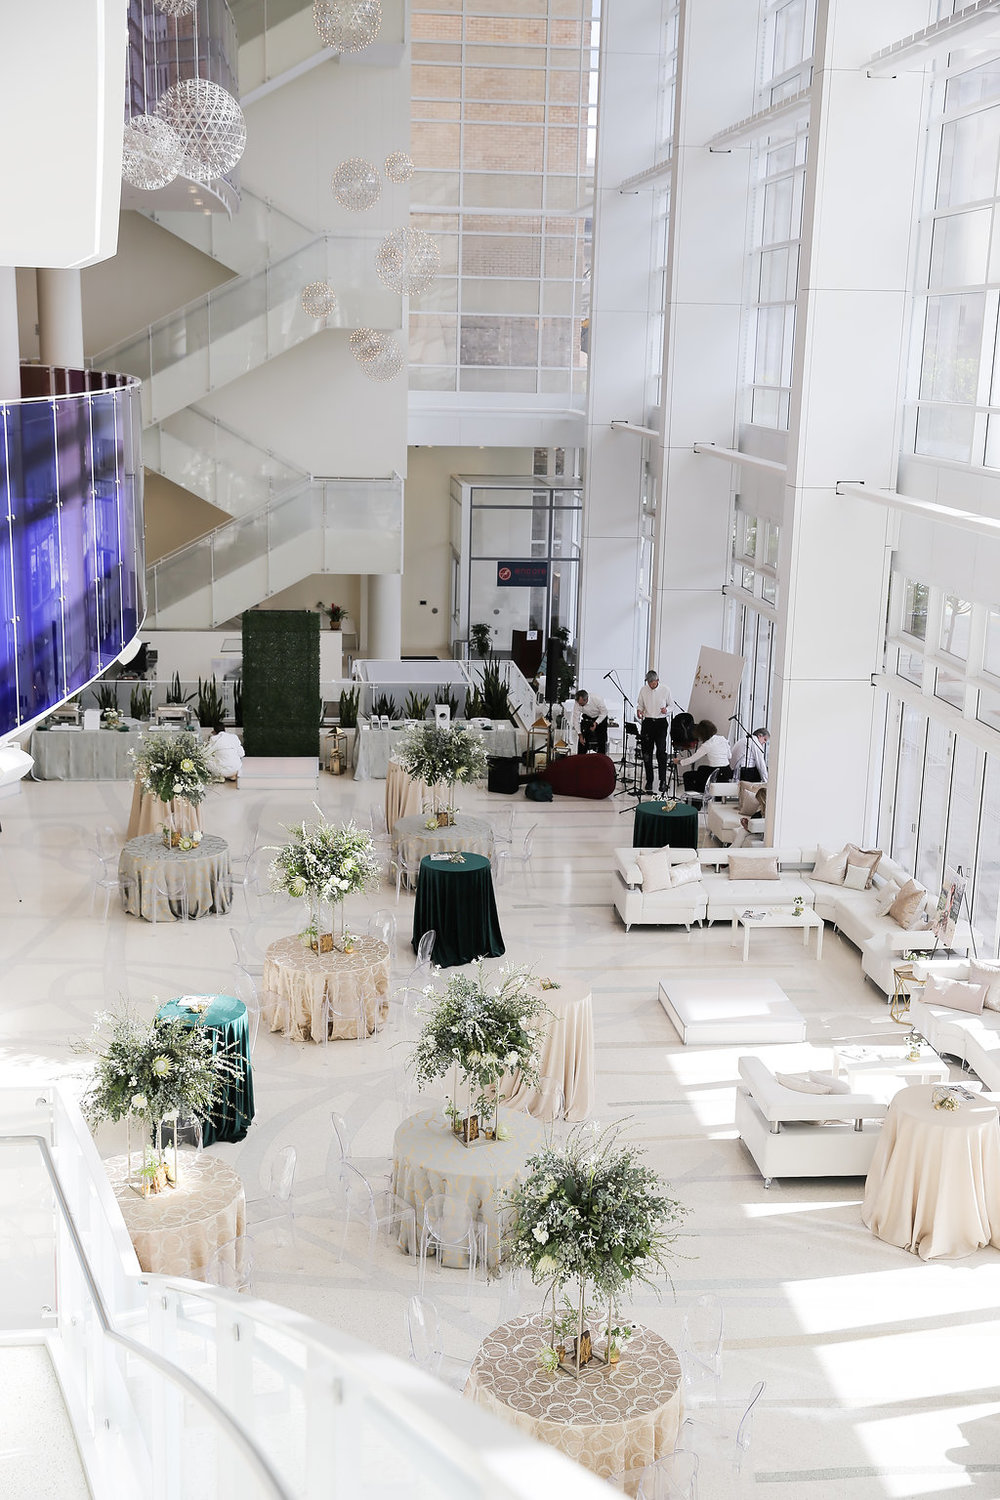 Utah Bride & Groom Magazine | UBG White Party | Eccles Theater | Emerald Green and Gold | Utah Wedding Professionals | Michelle Leo Events | Utah Event Planner and Designer | Pepper Nix Photography